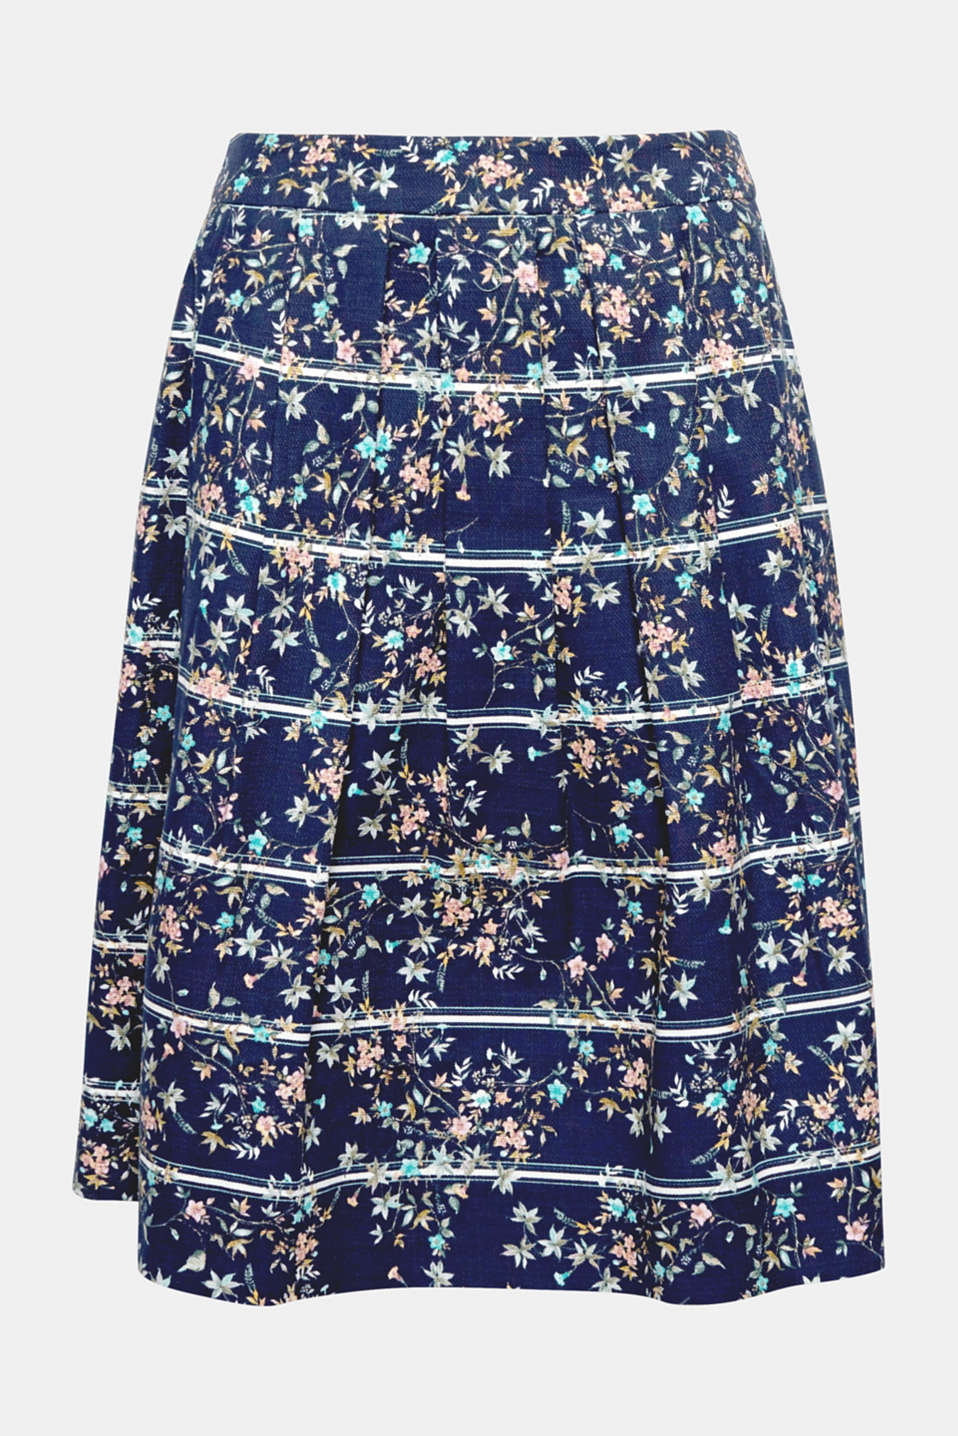 This feminine piece made of finely textured, slightly firmer stretch cotton with a mix of stripes and flowers is one of the latest skirt designs!